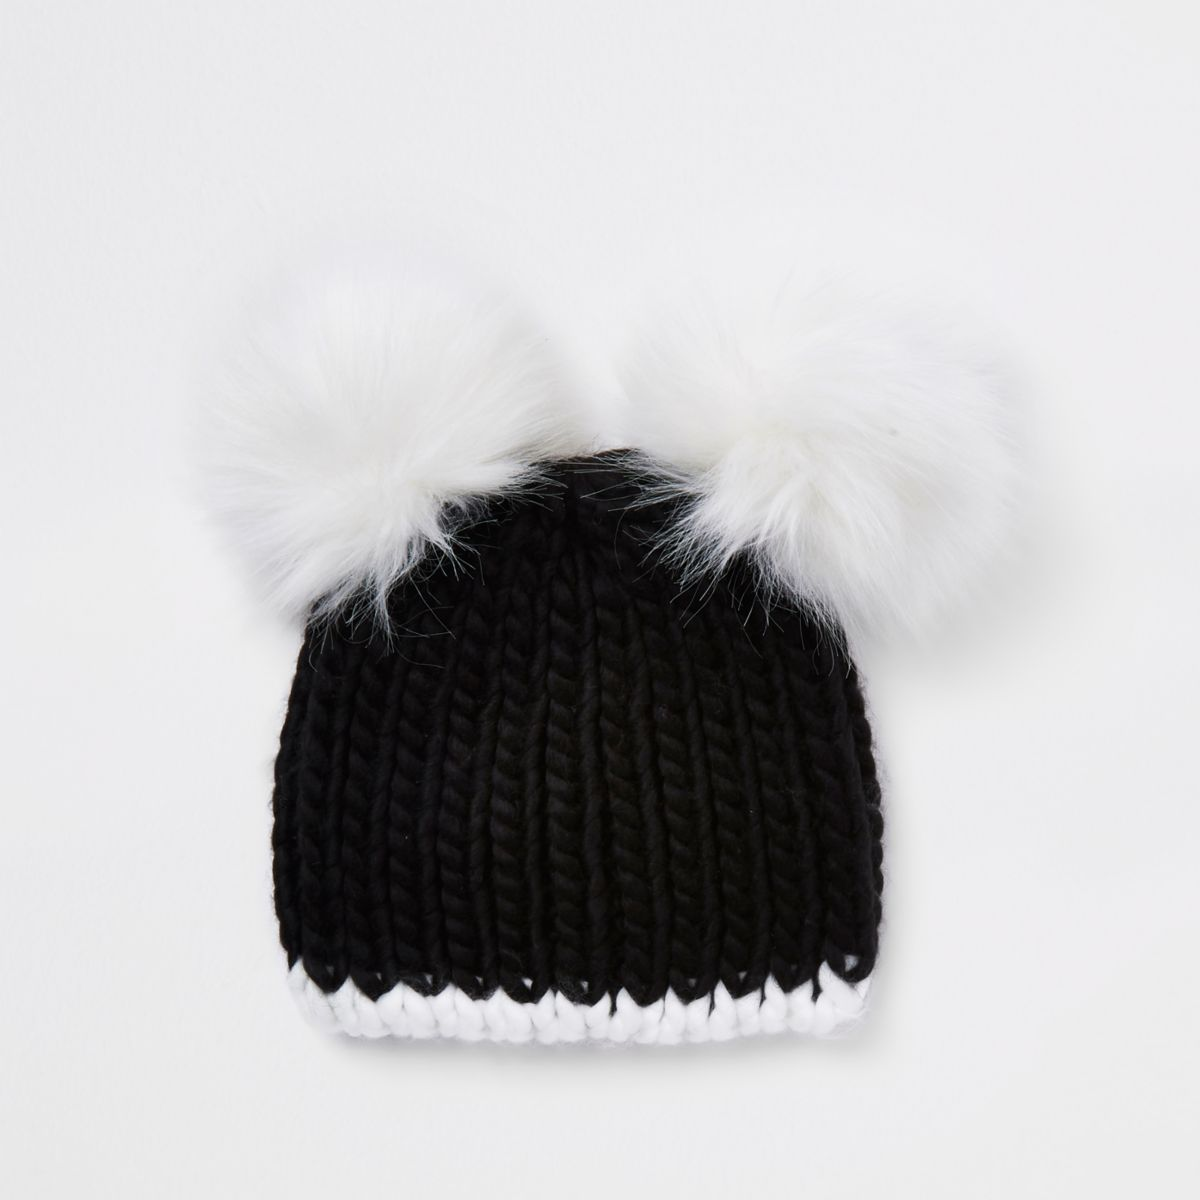 f52c8e6d953 ... buy lyst helene berman double pom pom beanie hat in black 0f9d1 54166